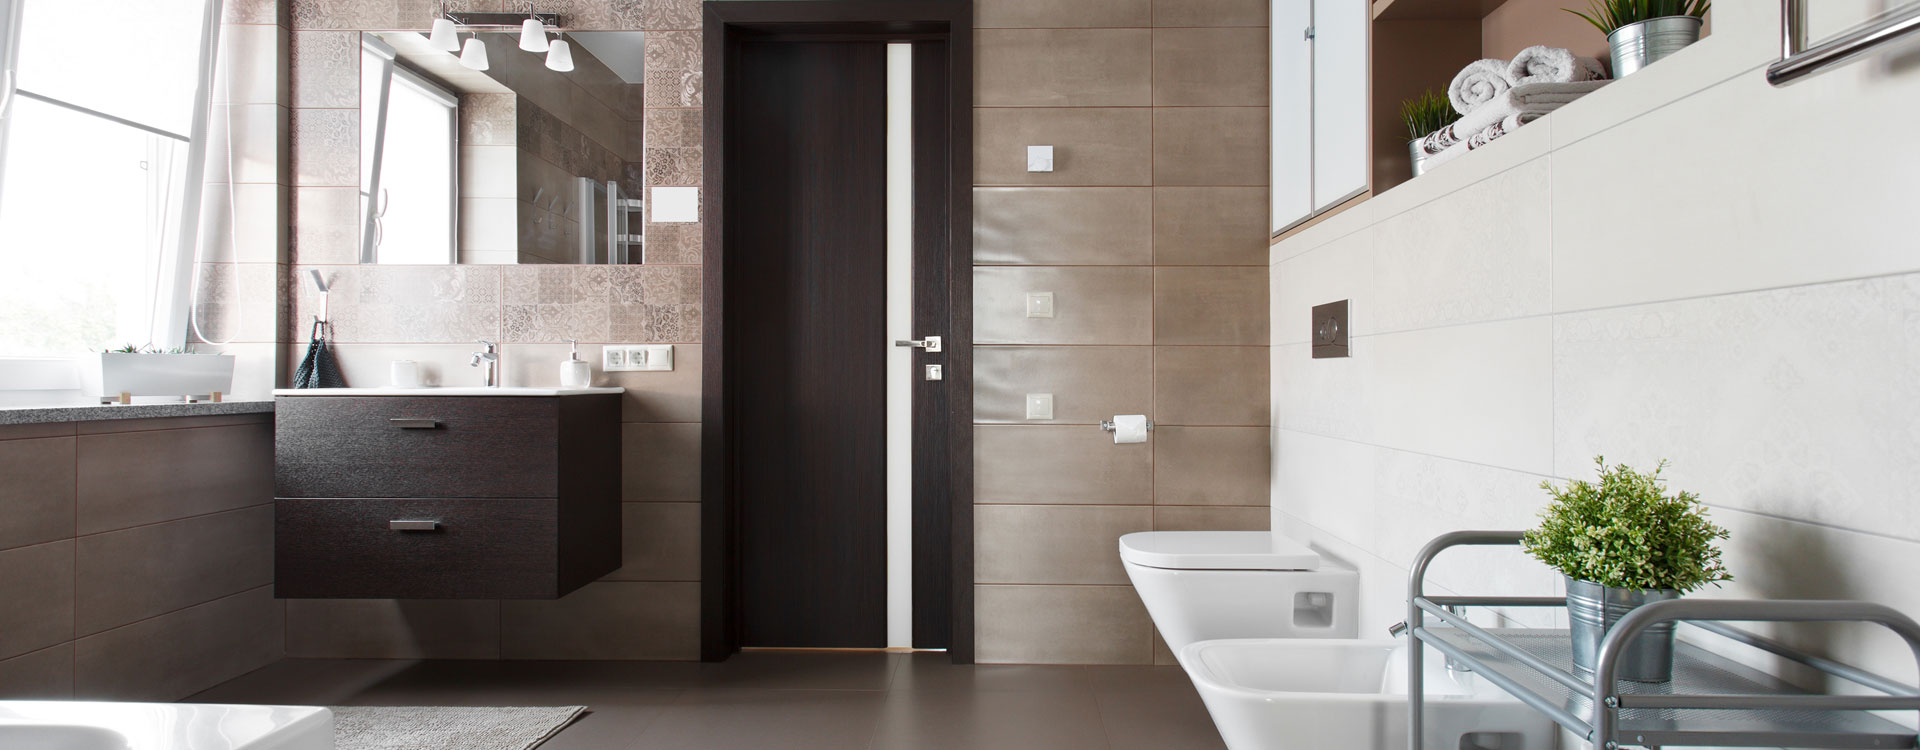 Relianzi Brisbane Bathroom Renovators Slider 3